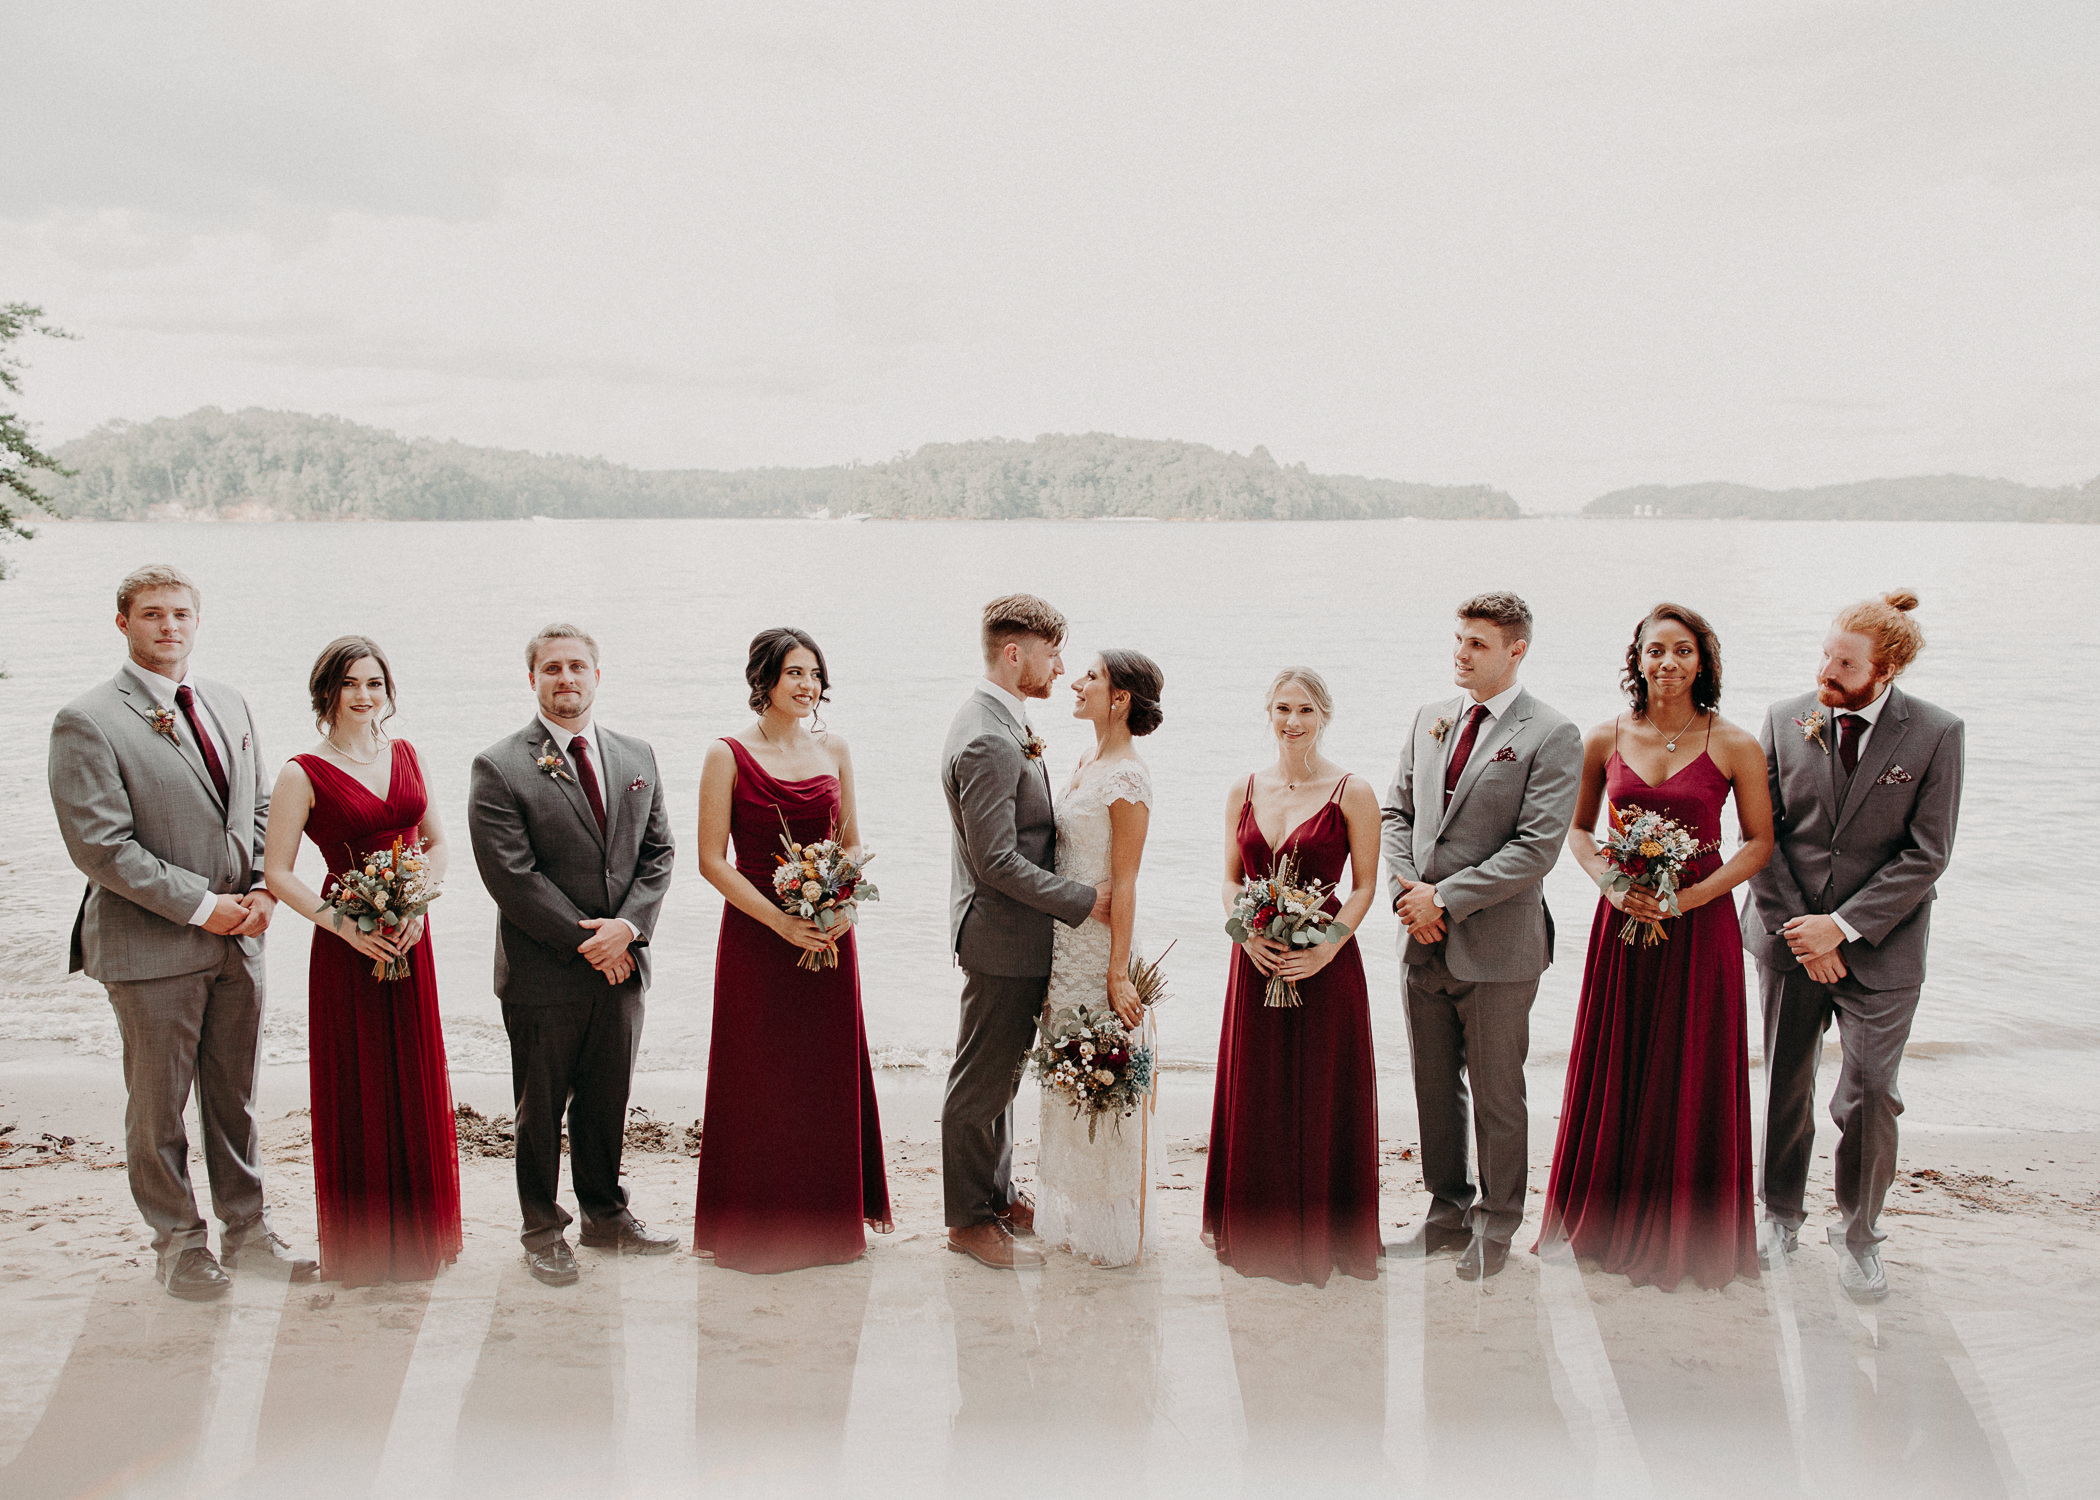 75 Bridal Party and Bride & Groom Portraits before the ceremony on wedding day - Atlanta Wedding Photographer .jpg